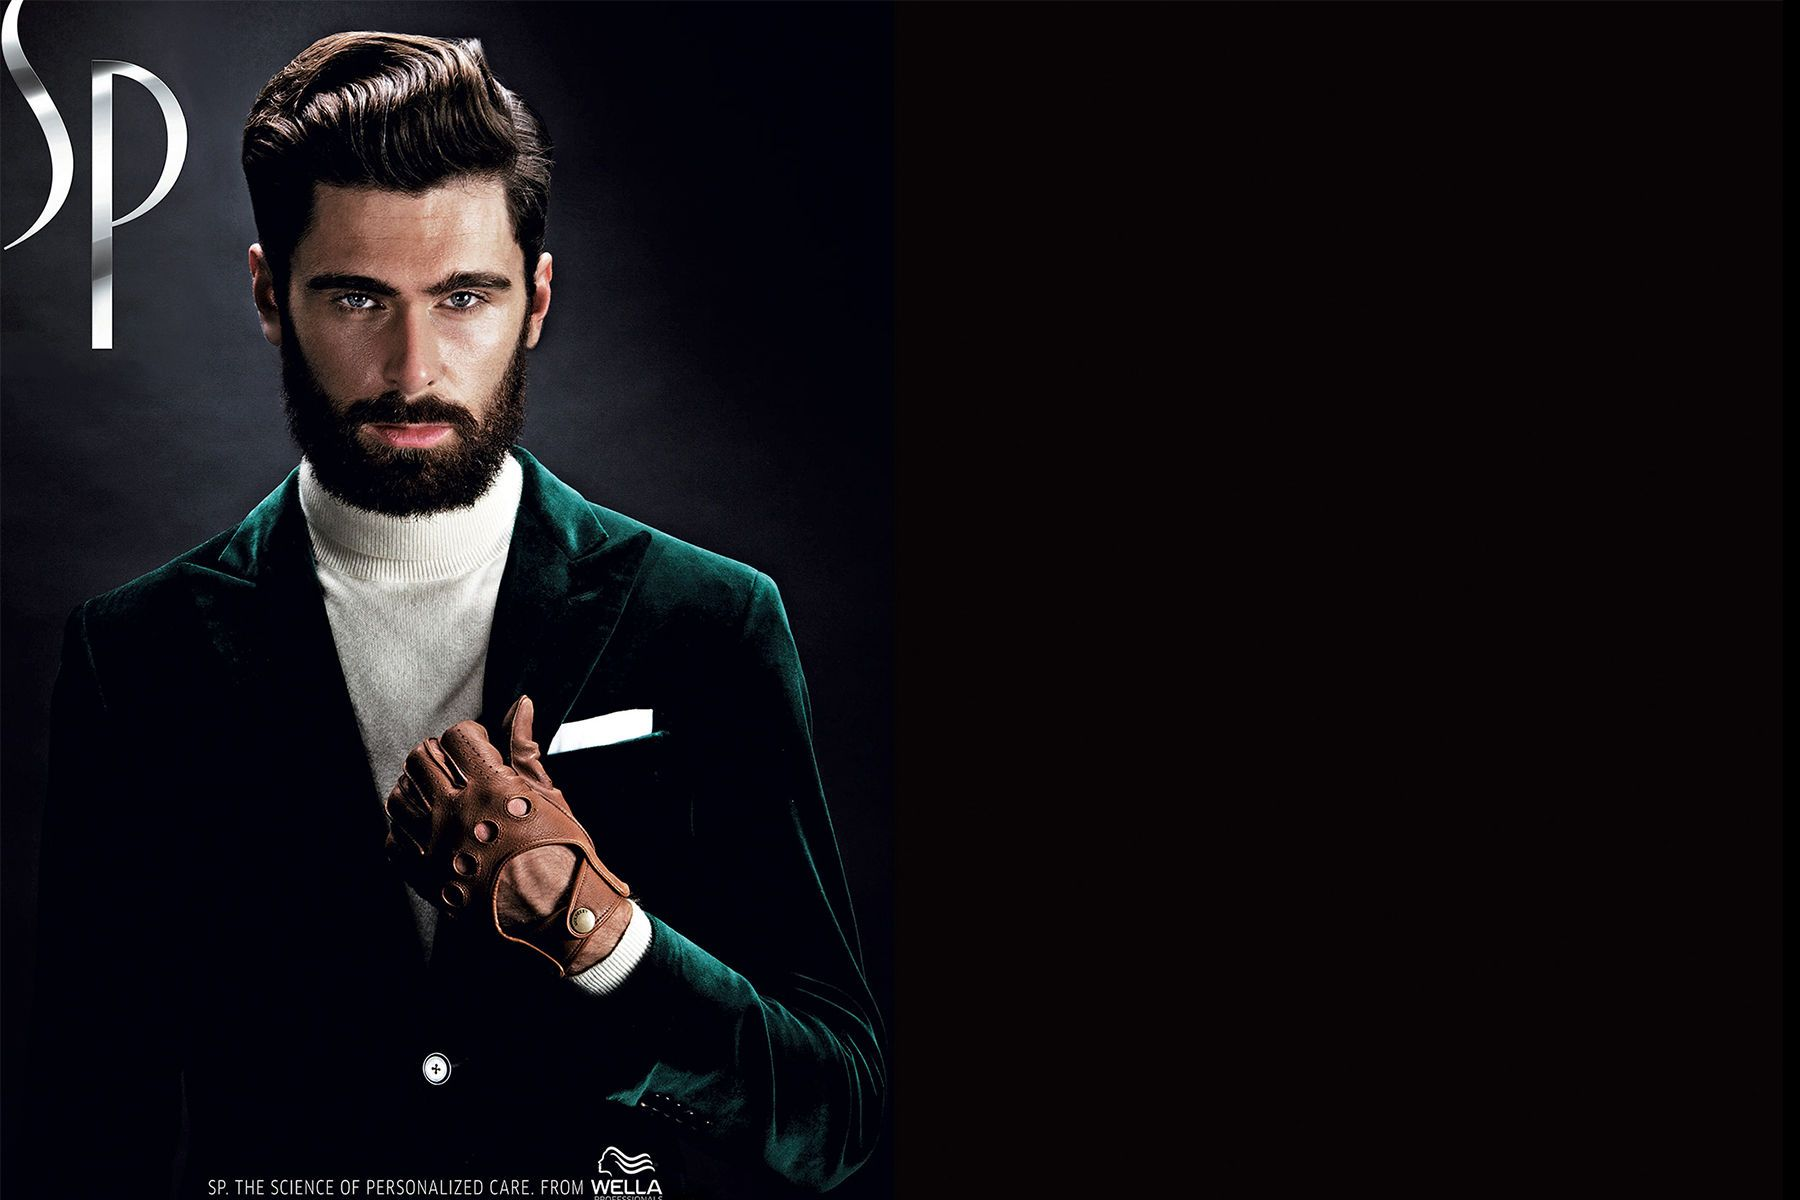 1wella_sp_men_campaign_by_torben_raun.jpg